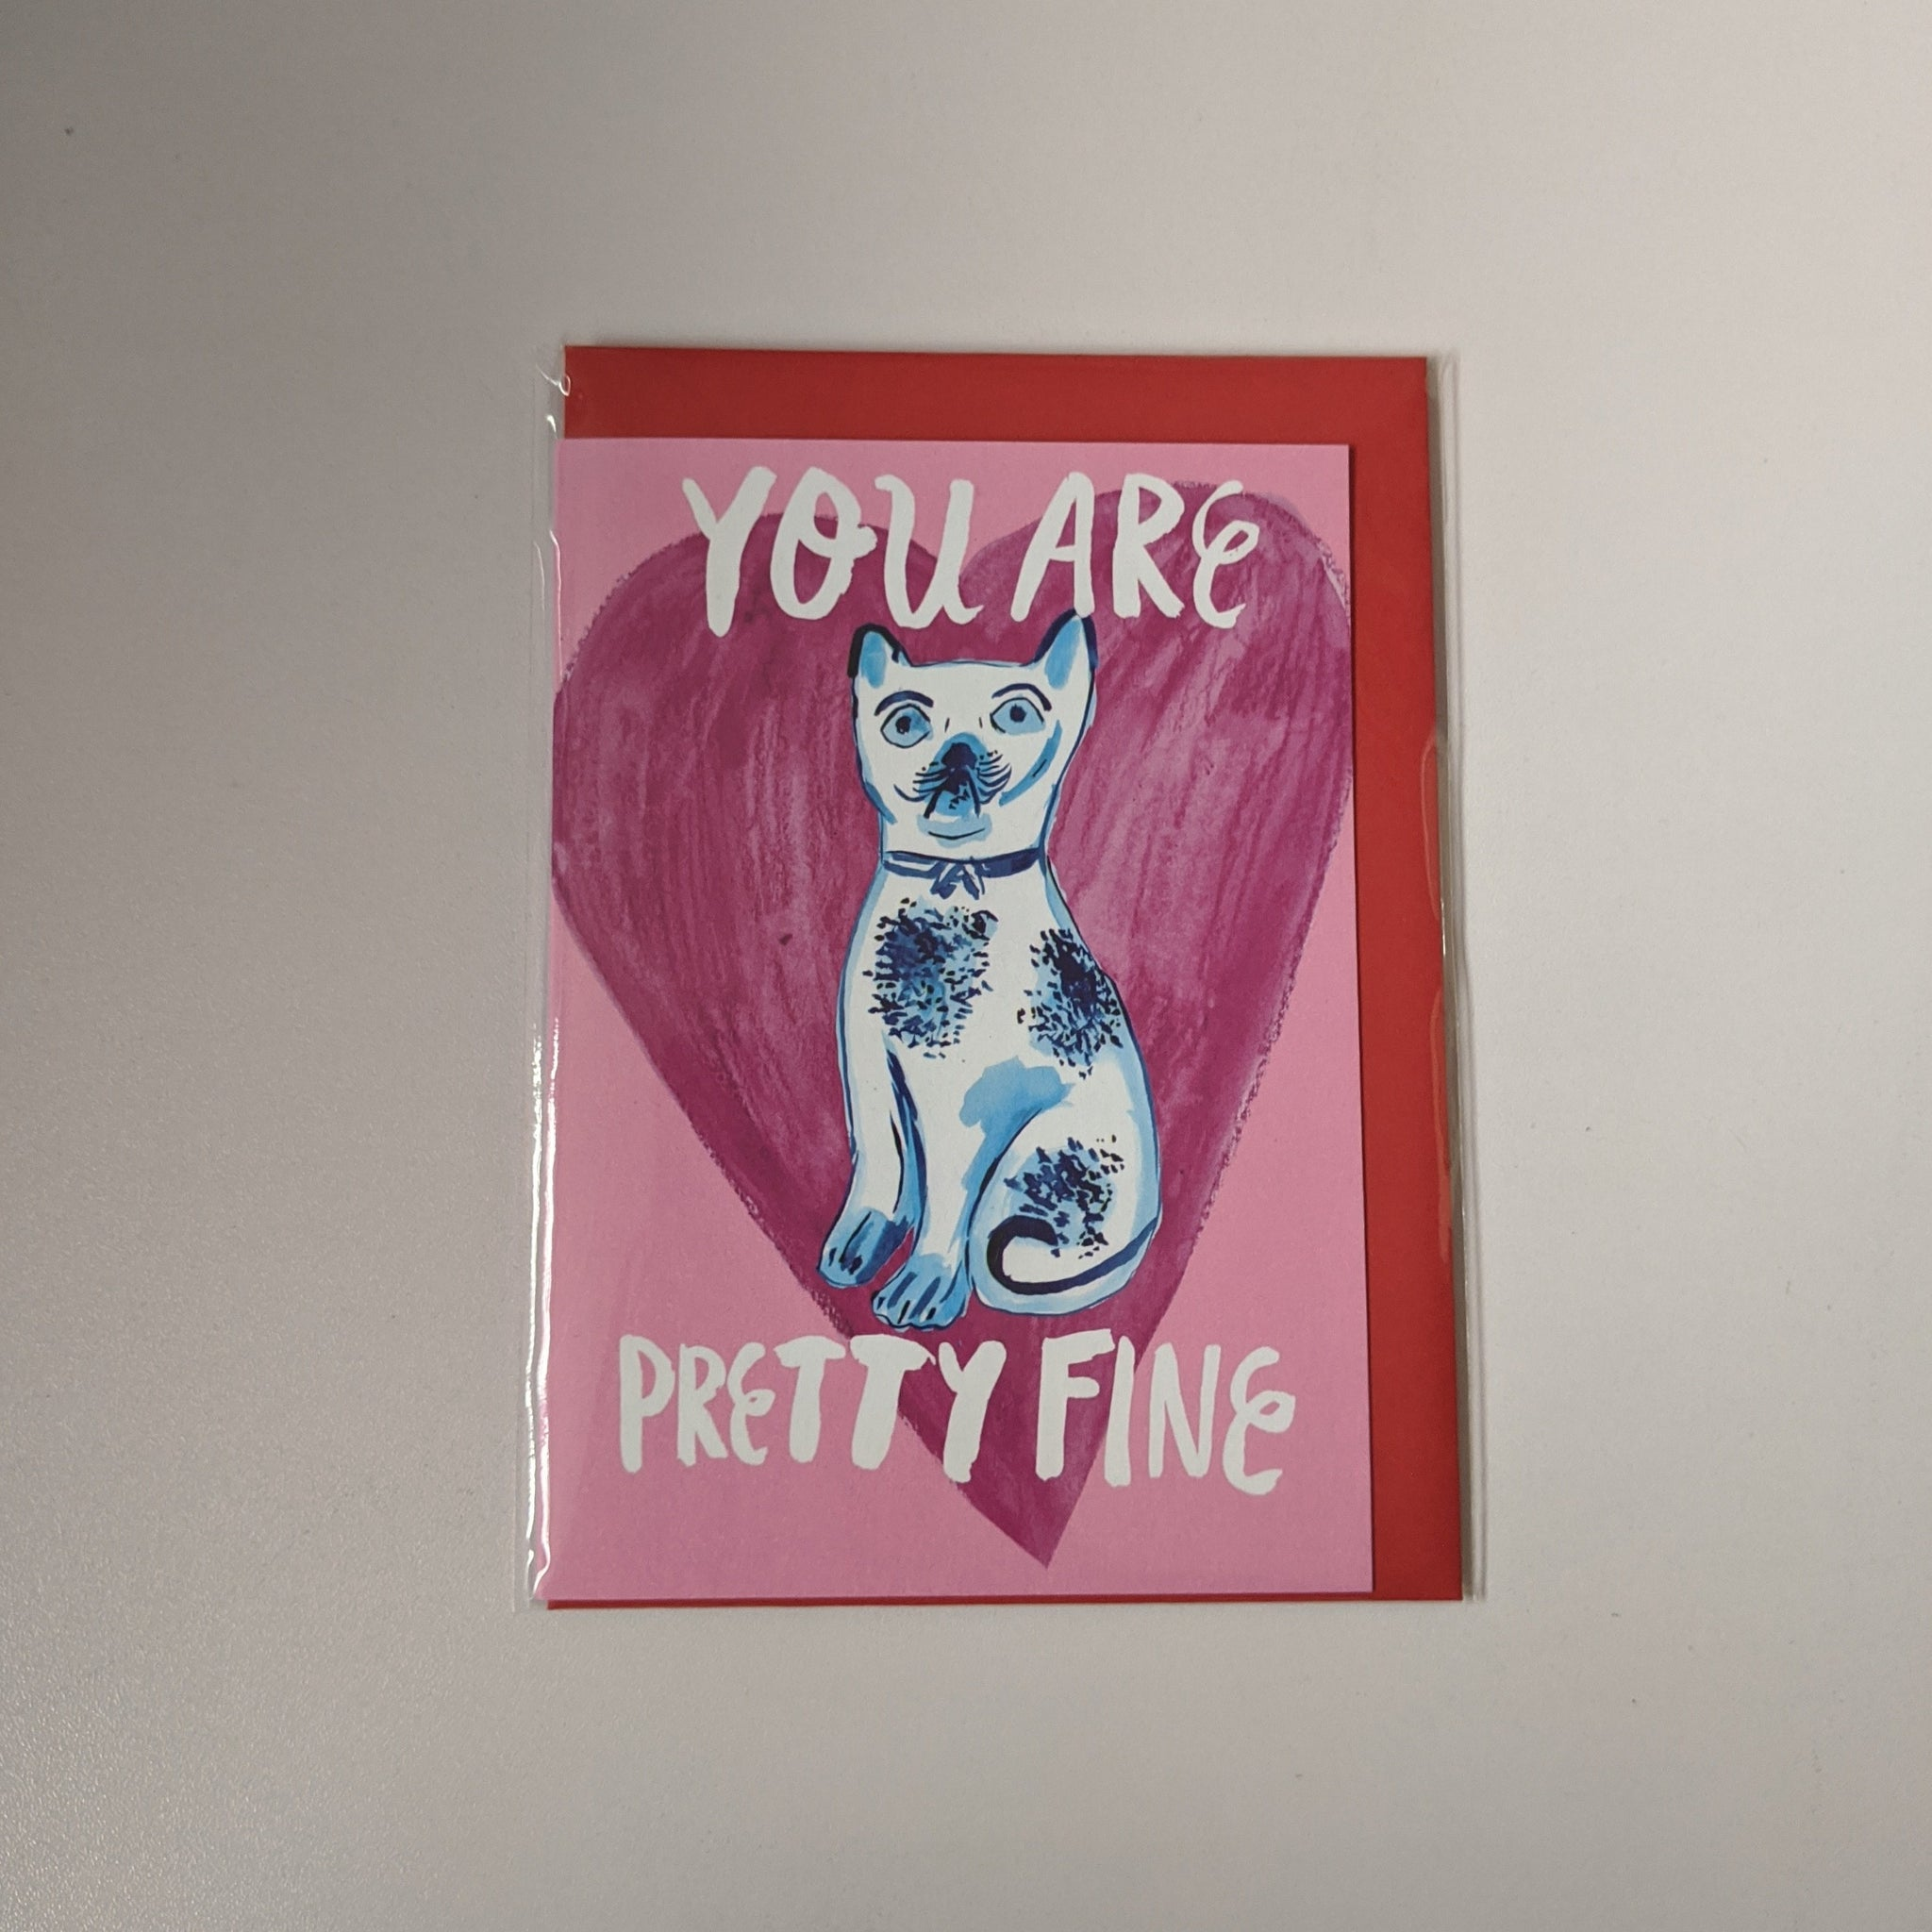 You are pretty fine